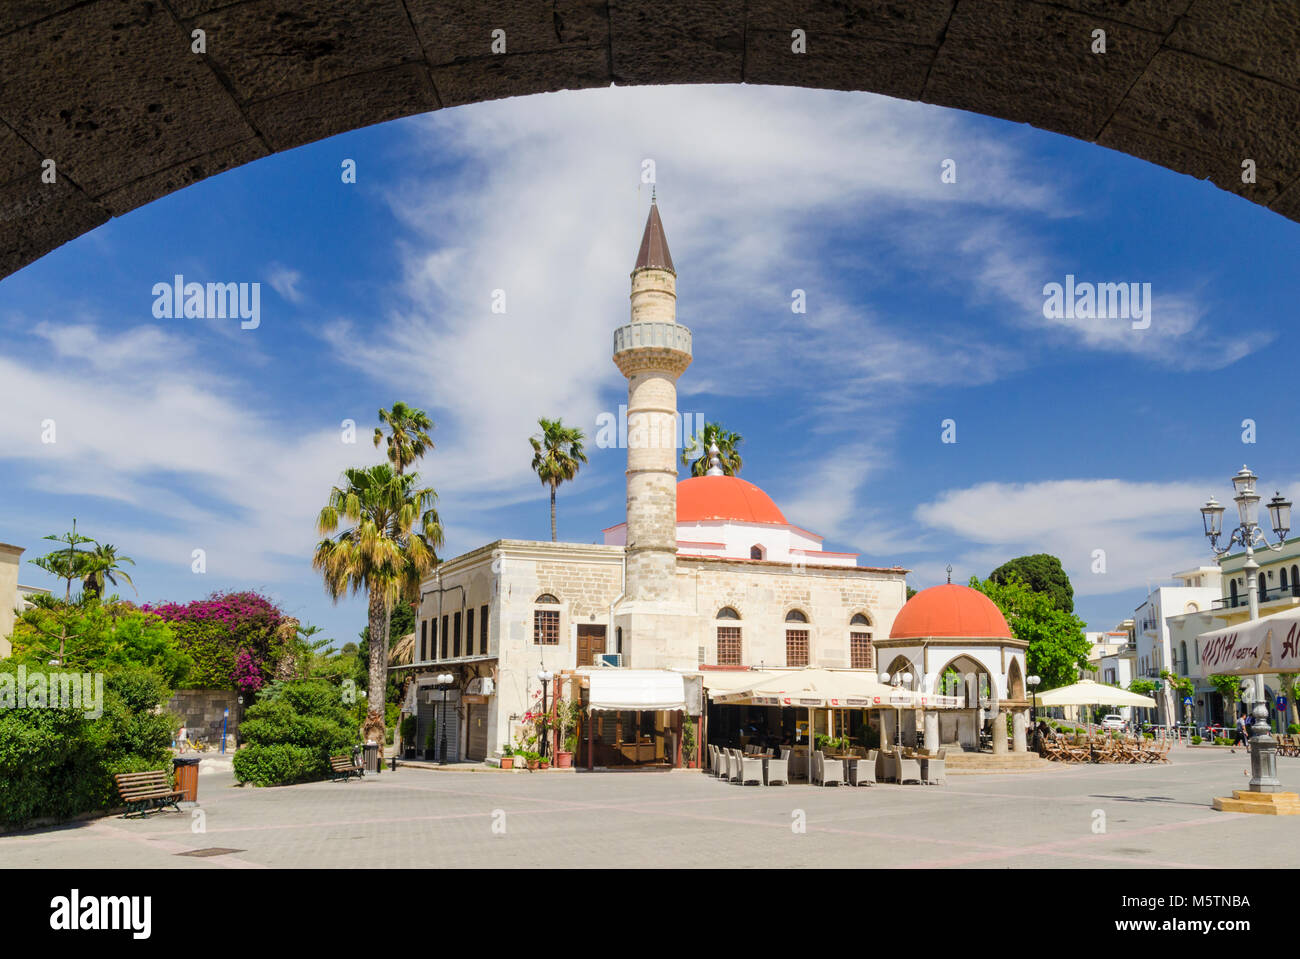 The Defterdar Mosque in Plateia Eleftherias, Kos Town, Dodecanese, Greece - Stock Image